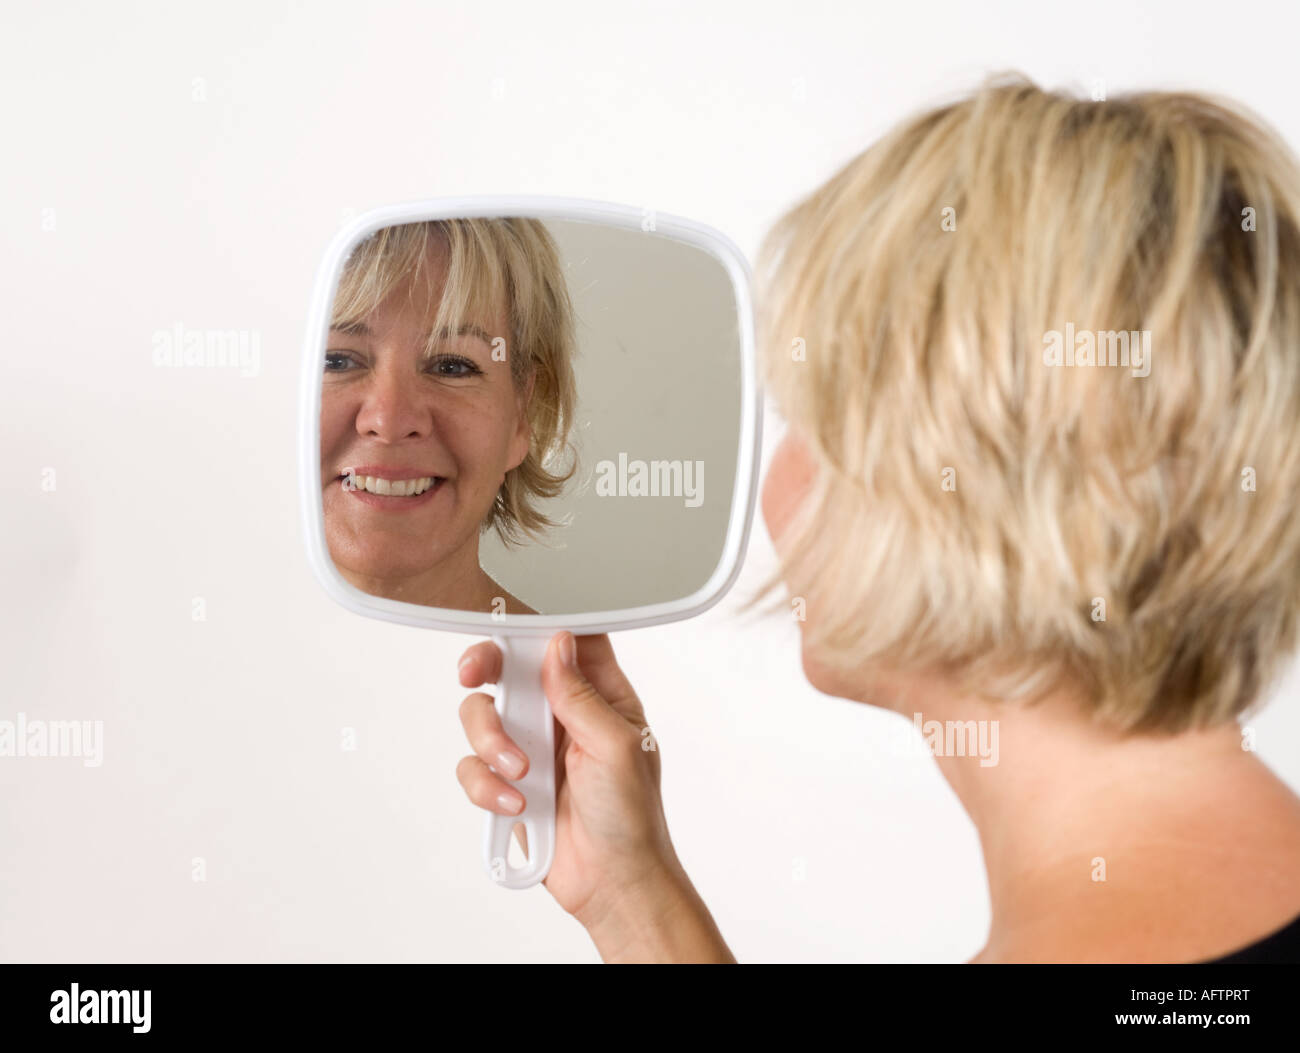 Mature woman holding hand mirror smiling Stock Photo 14019323 Alamy